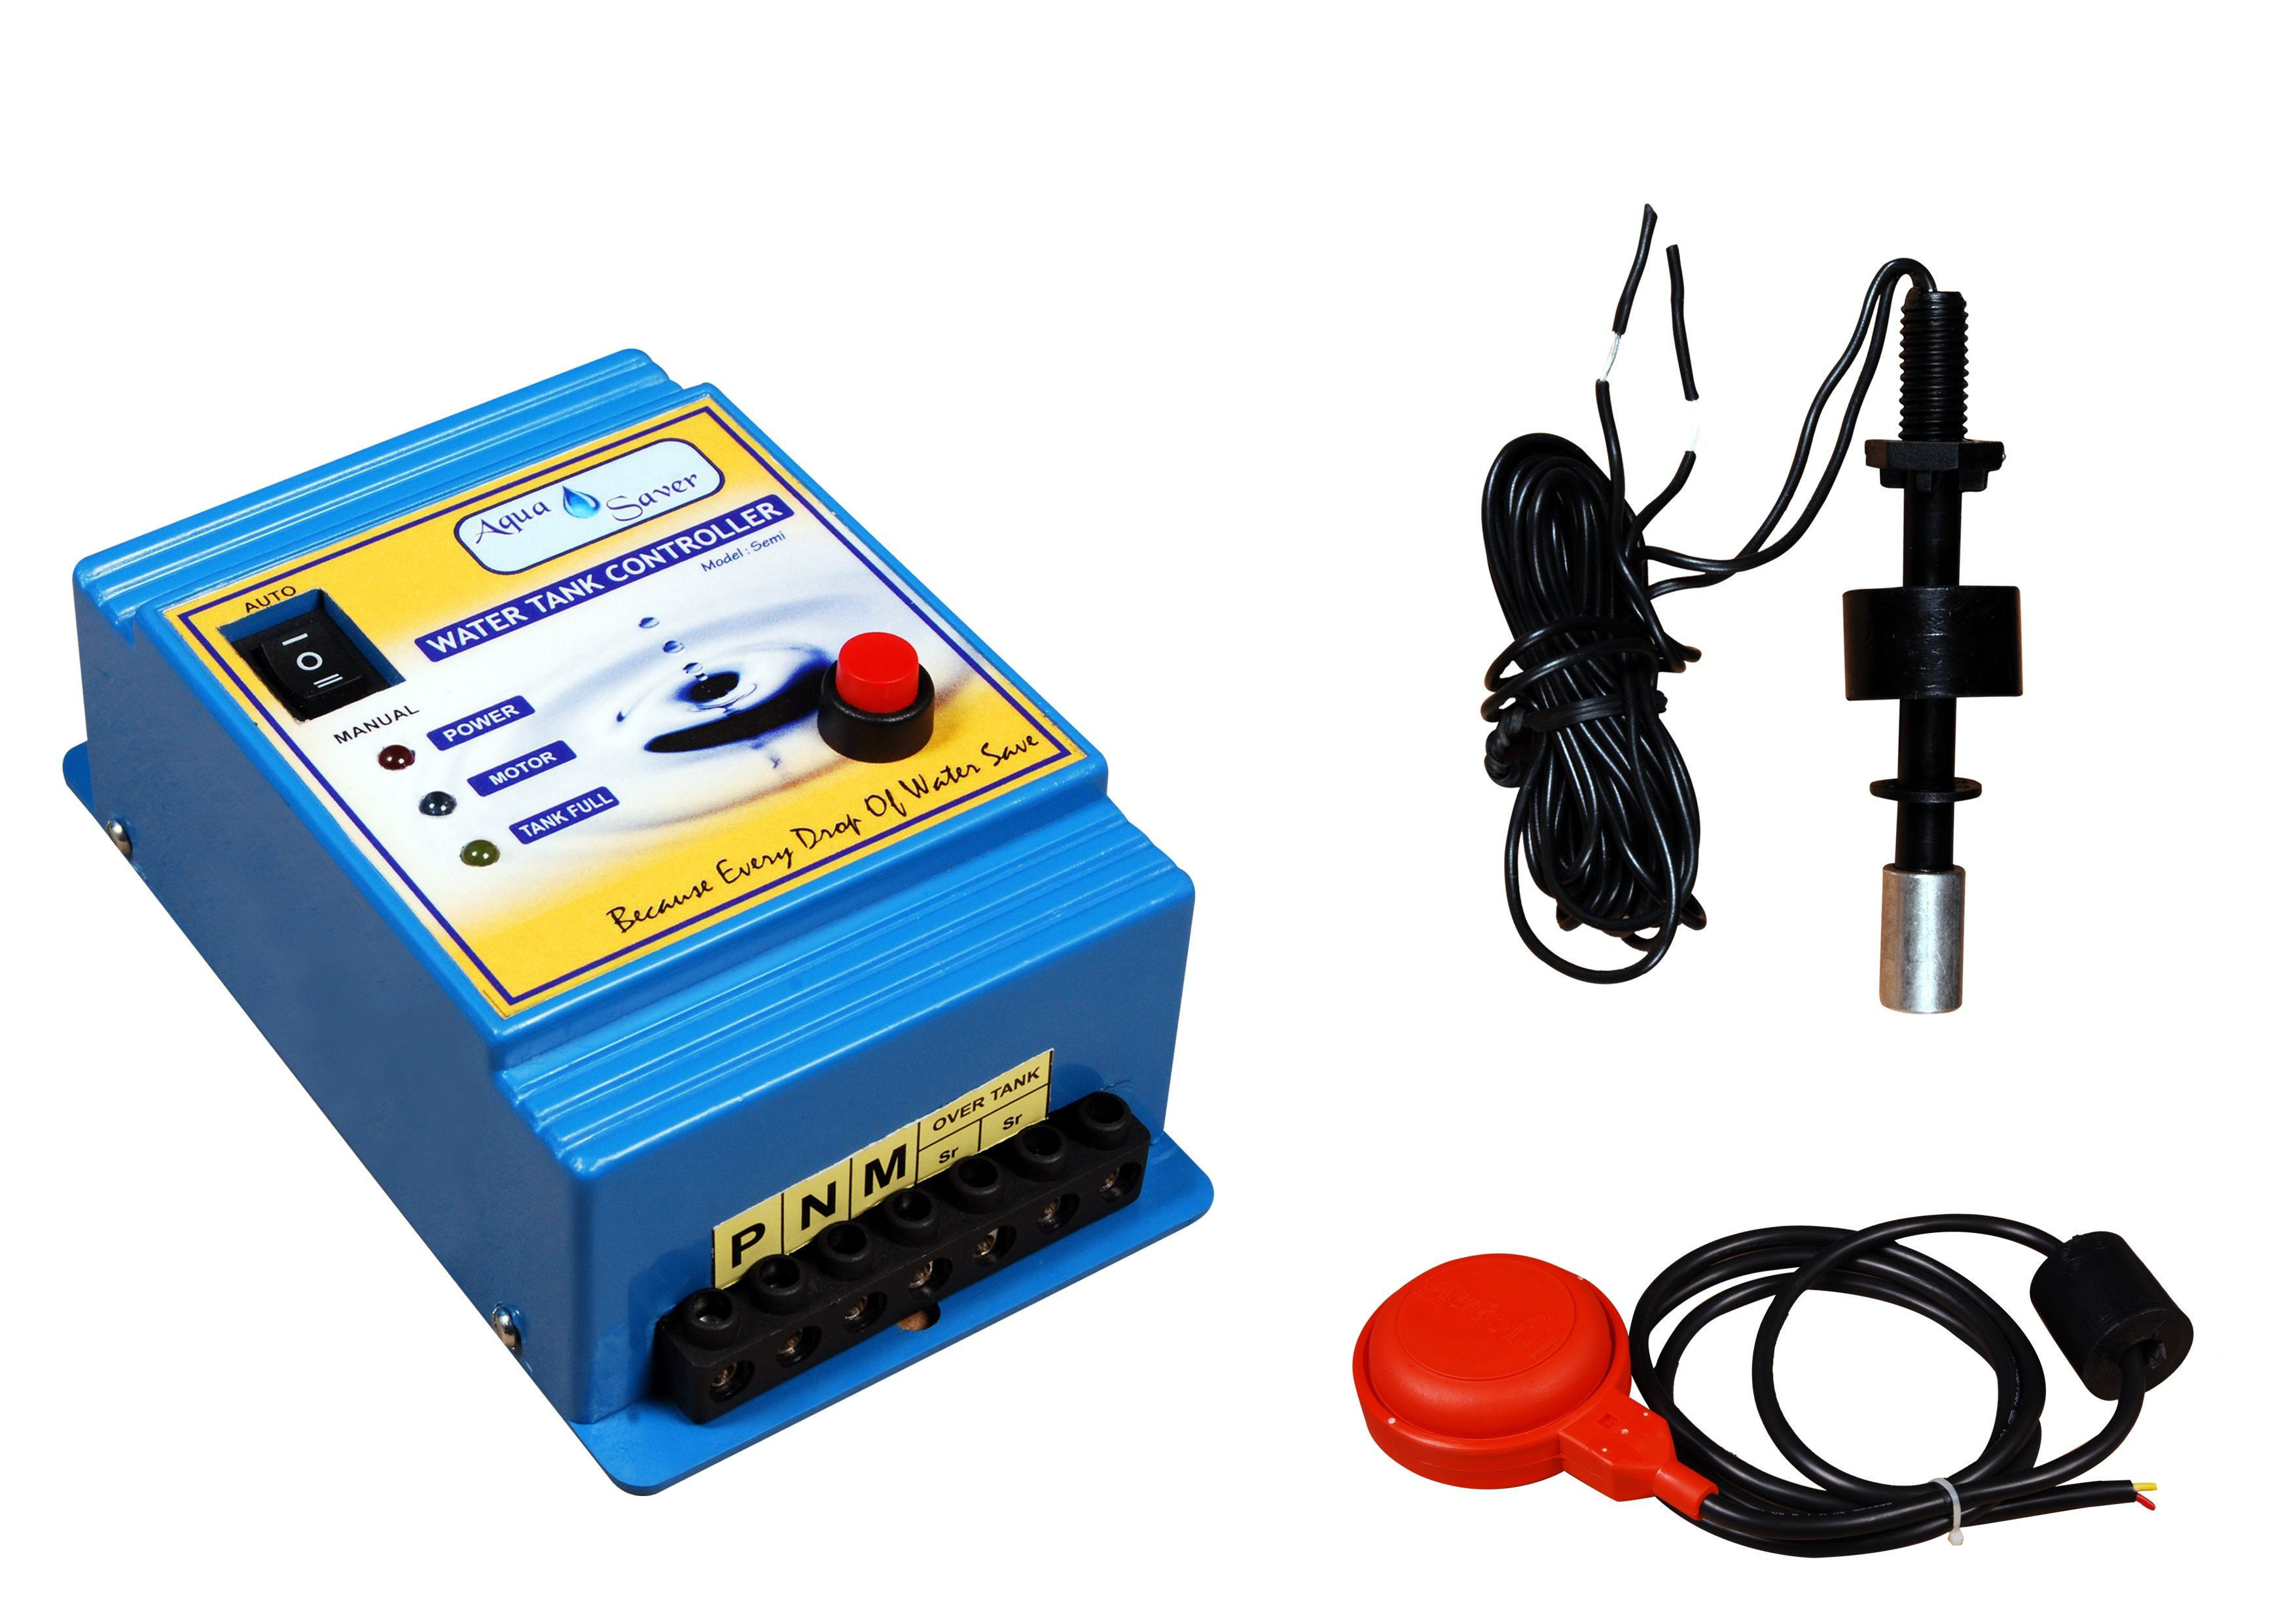 Semi Automatic Water Level Controller Floating In Water Control Level Sensor